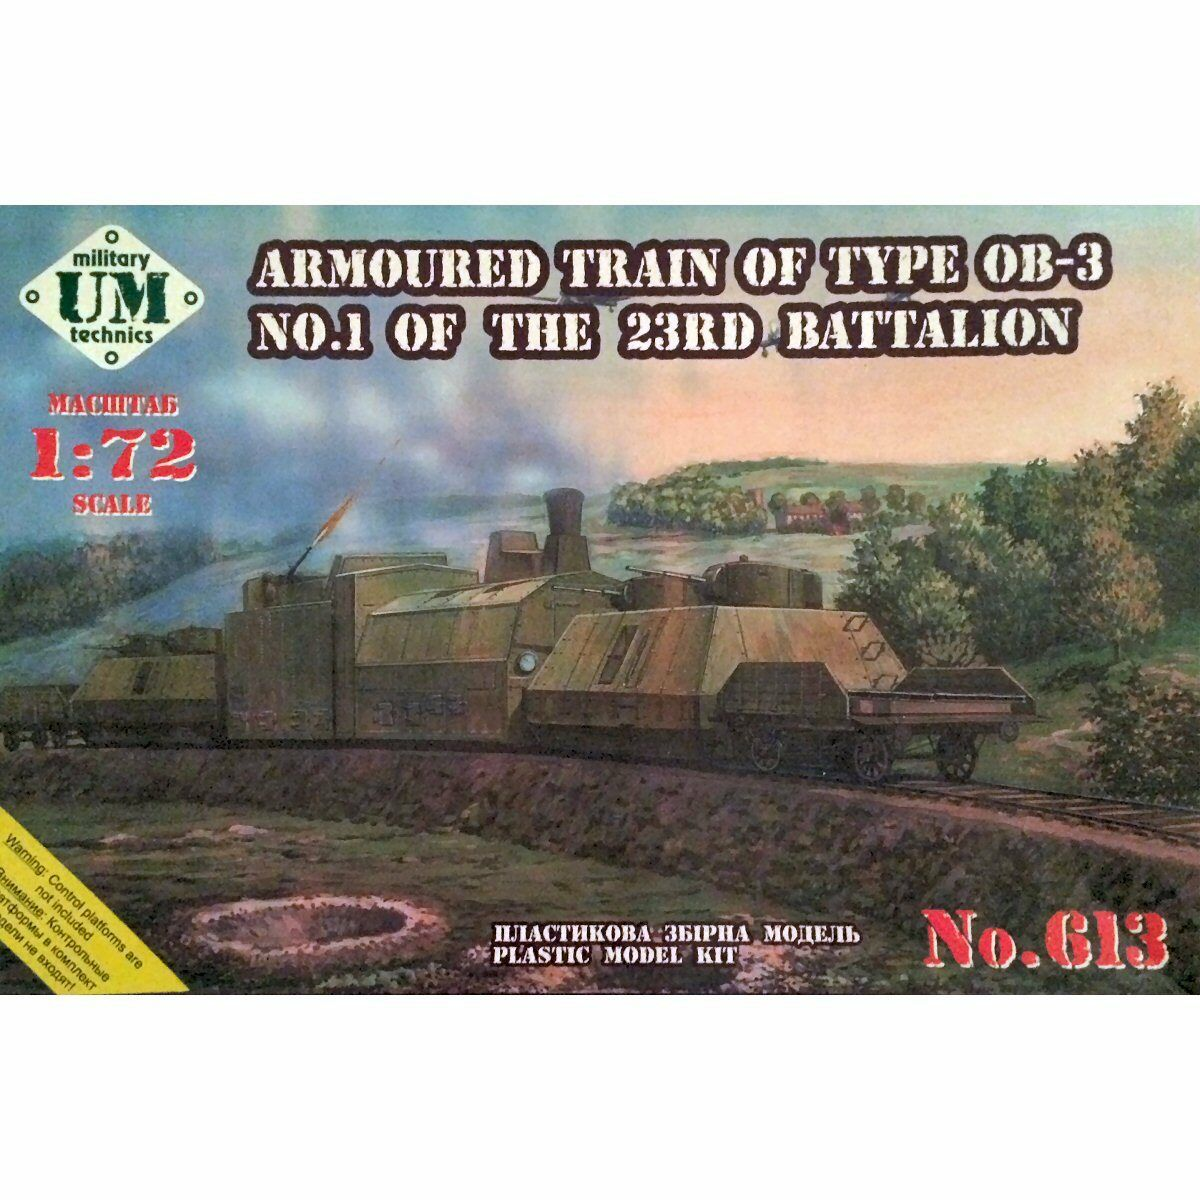 Unimodel 613 Armored Train Type OB-3 No1 of 23rd Battalion 1 72 scale model kit